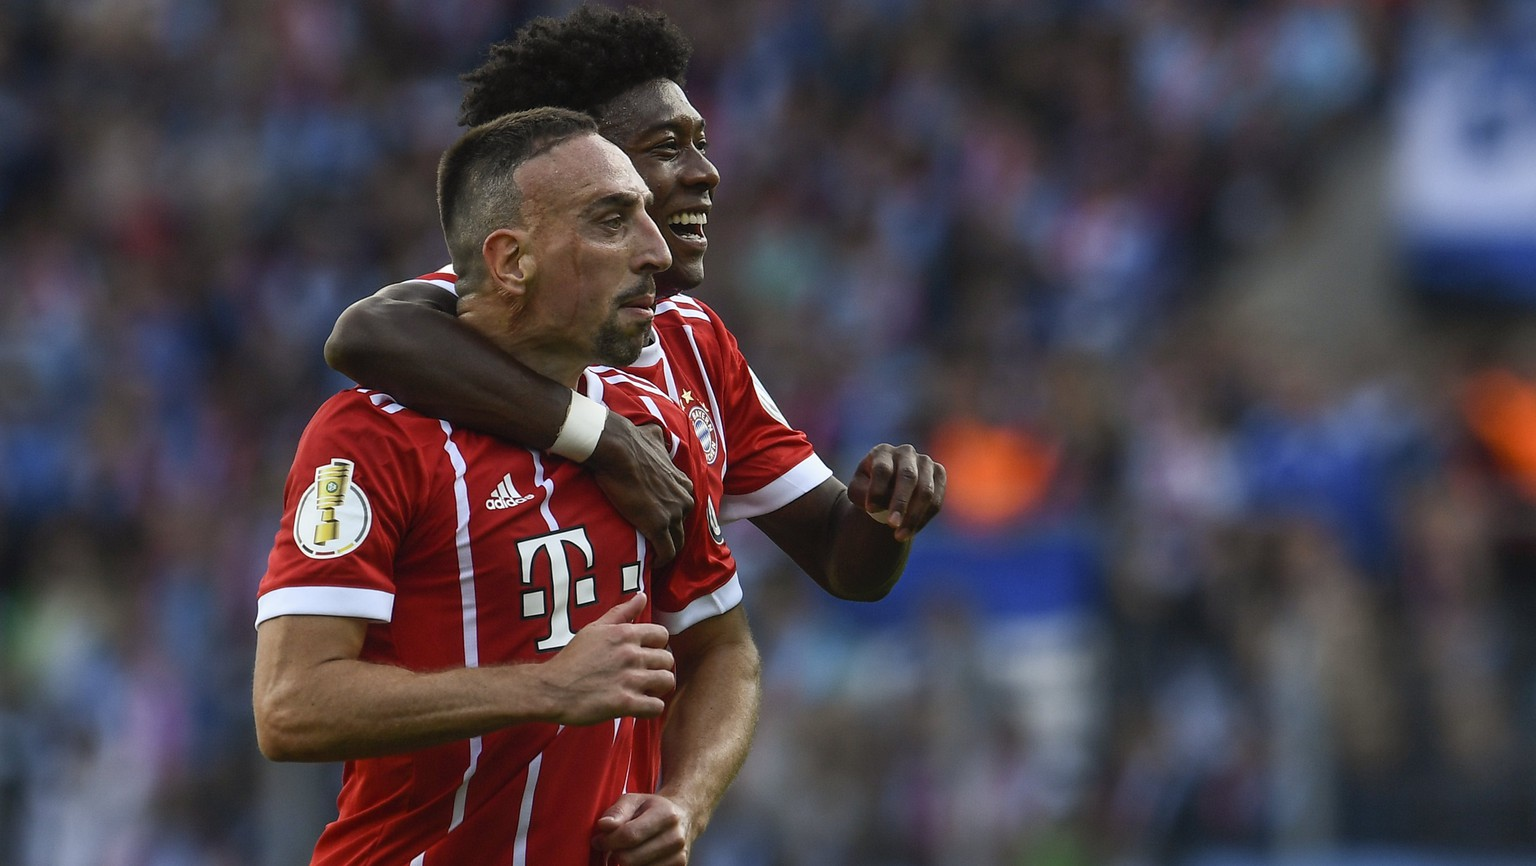 epa06140245 Bayern's Franck Ribery (C) celebrates with teammate David Alaba (back) after he scored against Chemnitzer FC during the German DFB Cup first round match between Chemnitzer FC and FC Bayern Munich in Chemnitz, Germany, 12 August 2017.  EPA/FILIP SINGER ATTENTION: BLOCKING PERIOD! The DFB permits the further utilisation and publication of the pictures for mobile services (especially MMS) and for DVB-H and DMB only after the end of the match.)